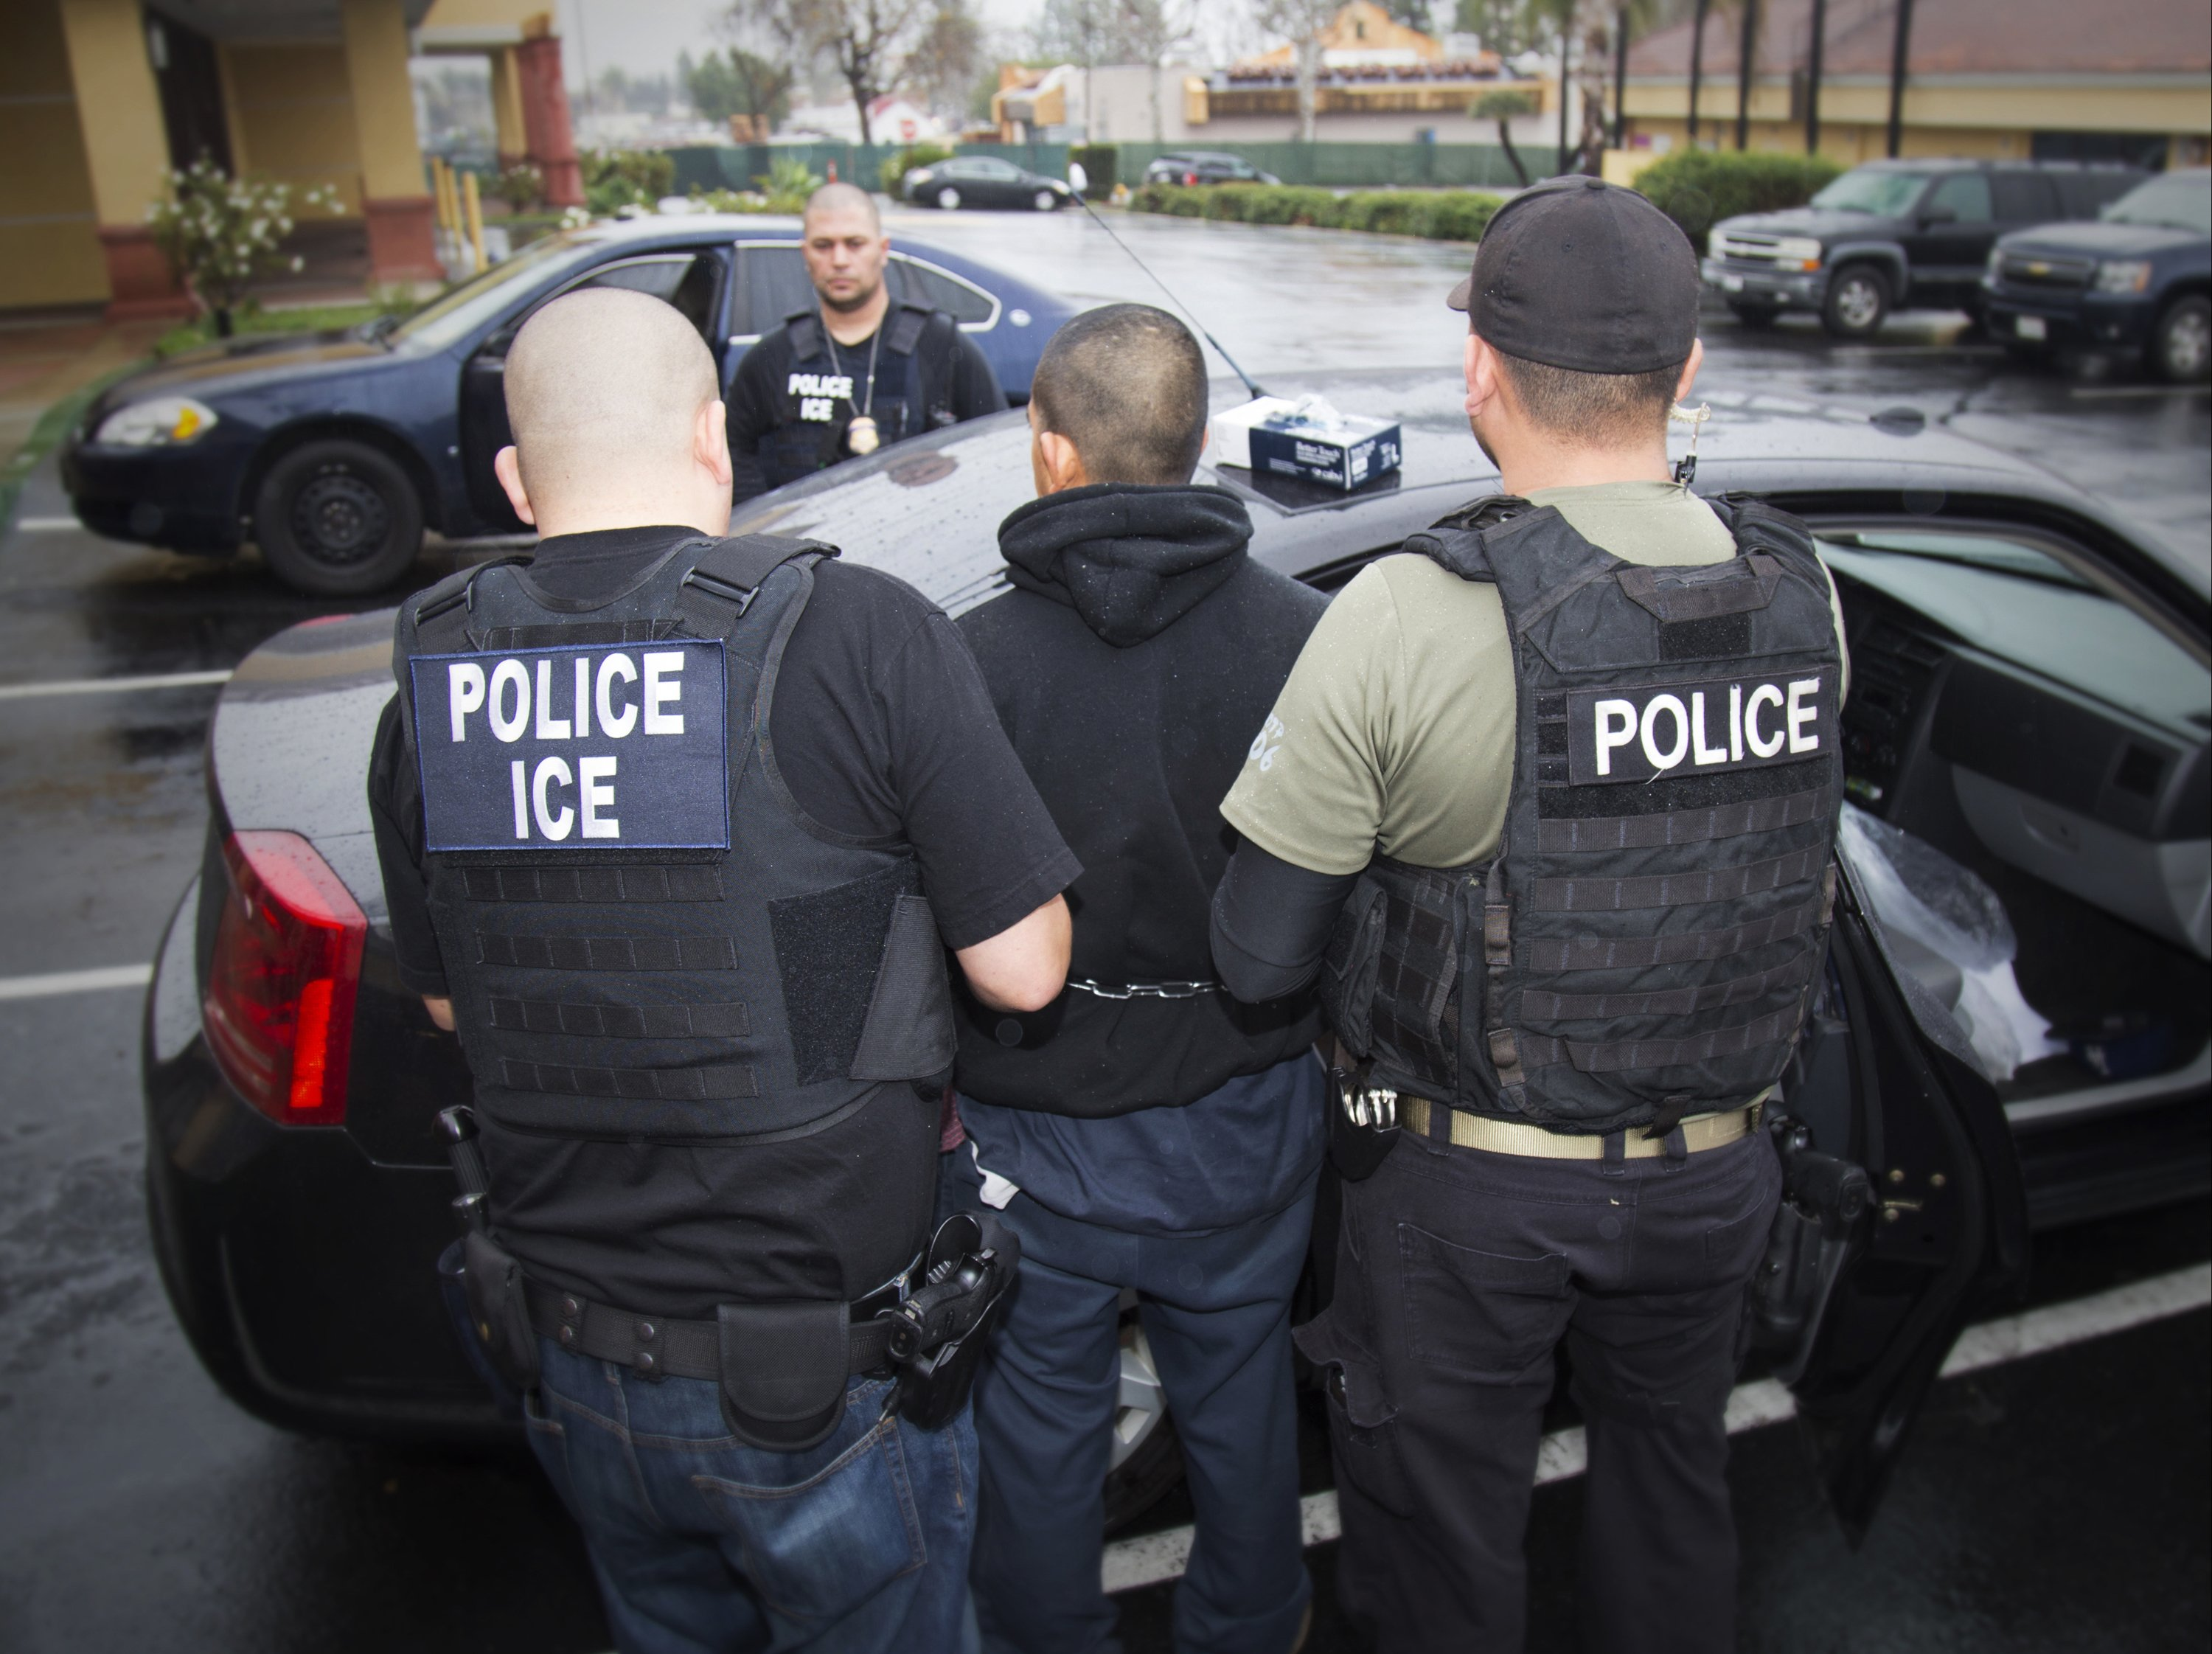 Trump lays out tougher approach to illegal immigration